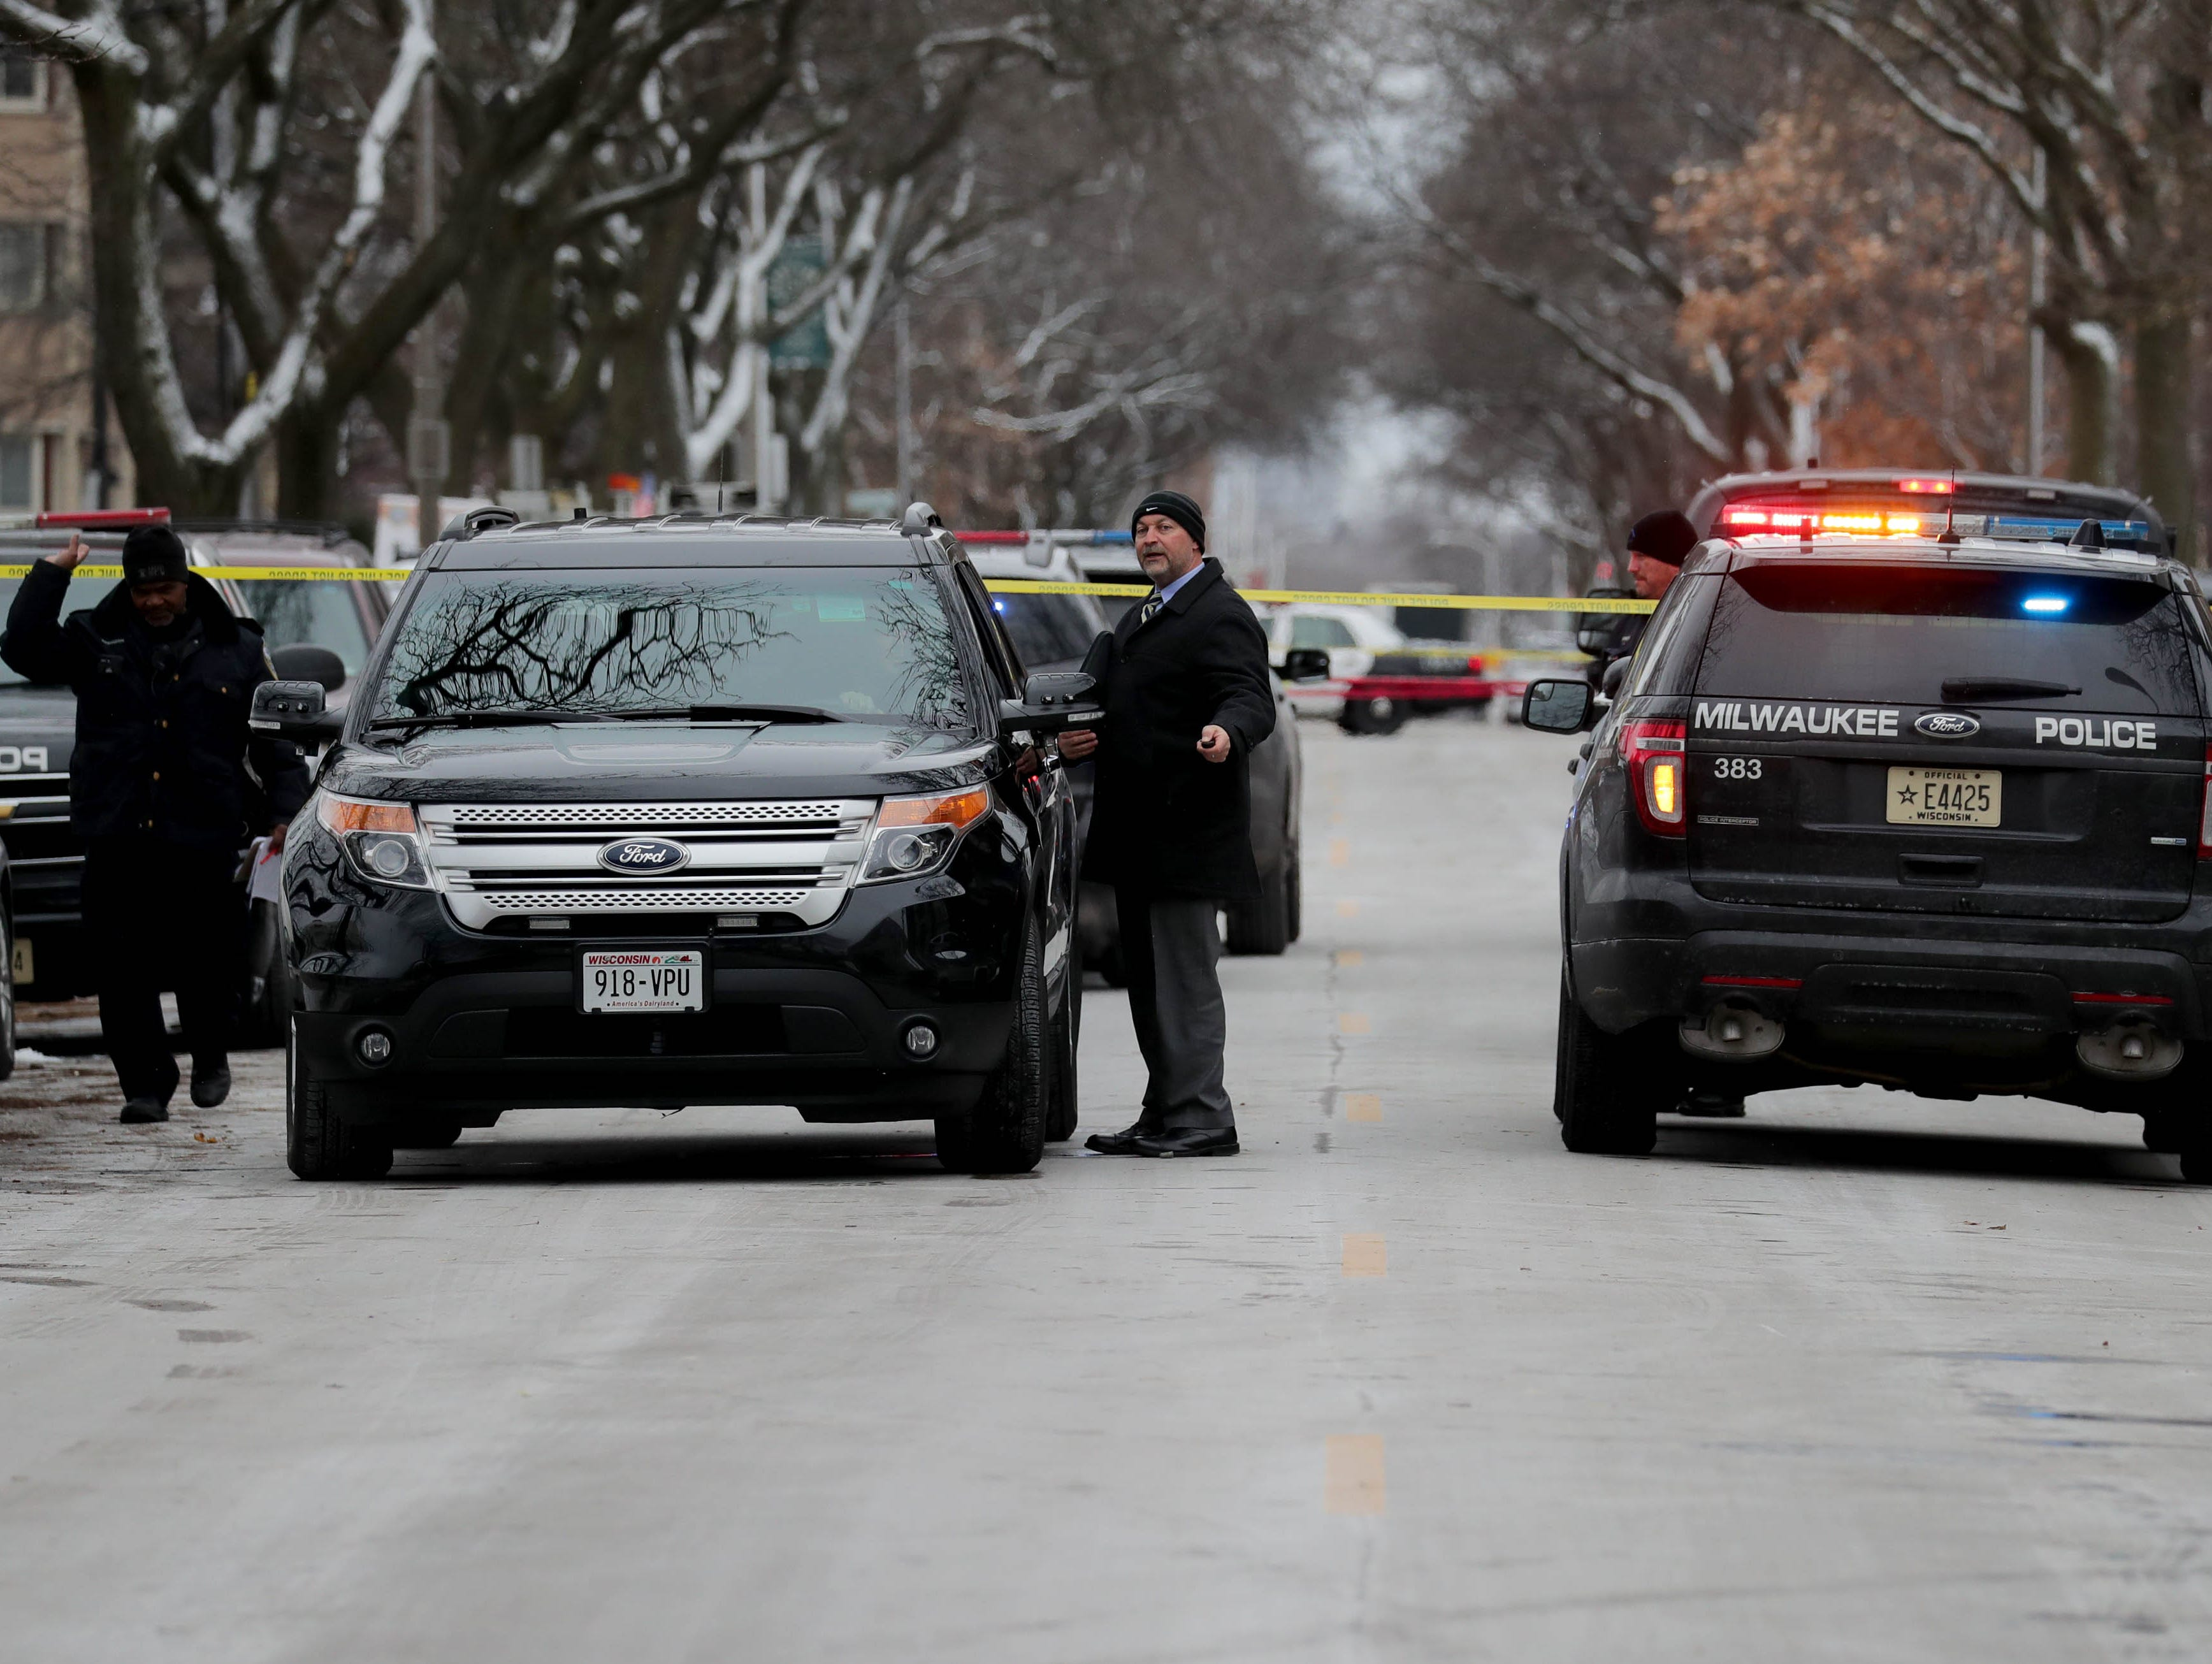 Milwaukee police investigate the scene of what is believed to be an officer-involved shooting in the 2800 block of West Wells Street Monday.